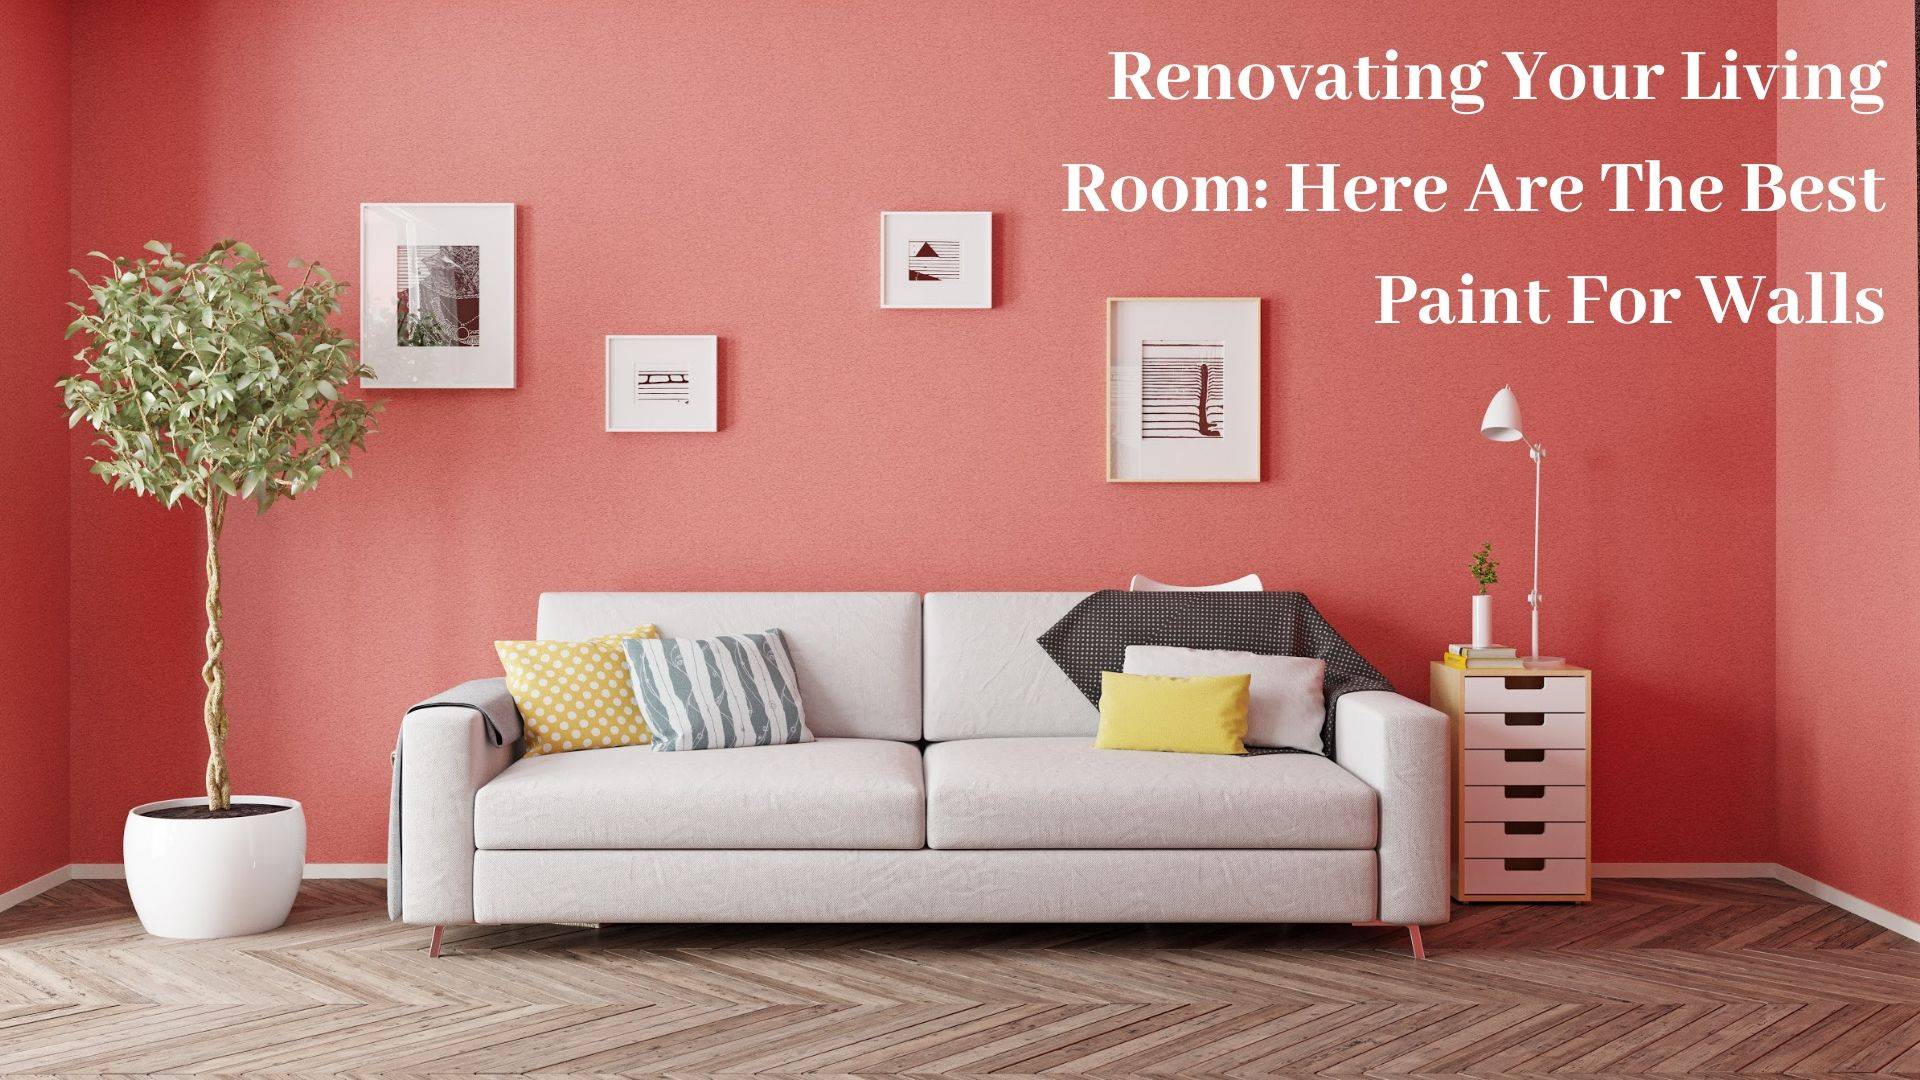 Renovating Your Living Room: Here Are The Best Paint For Walls